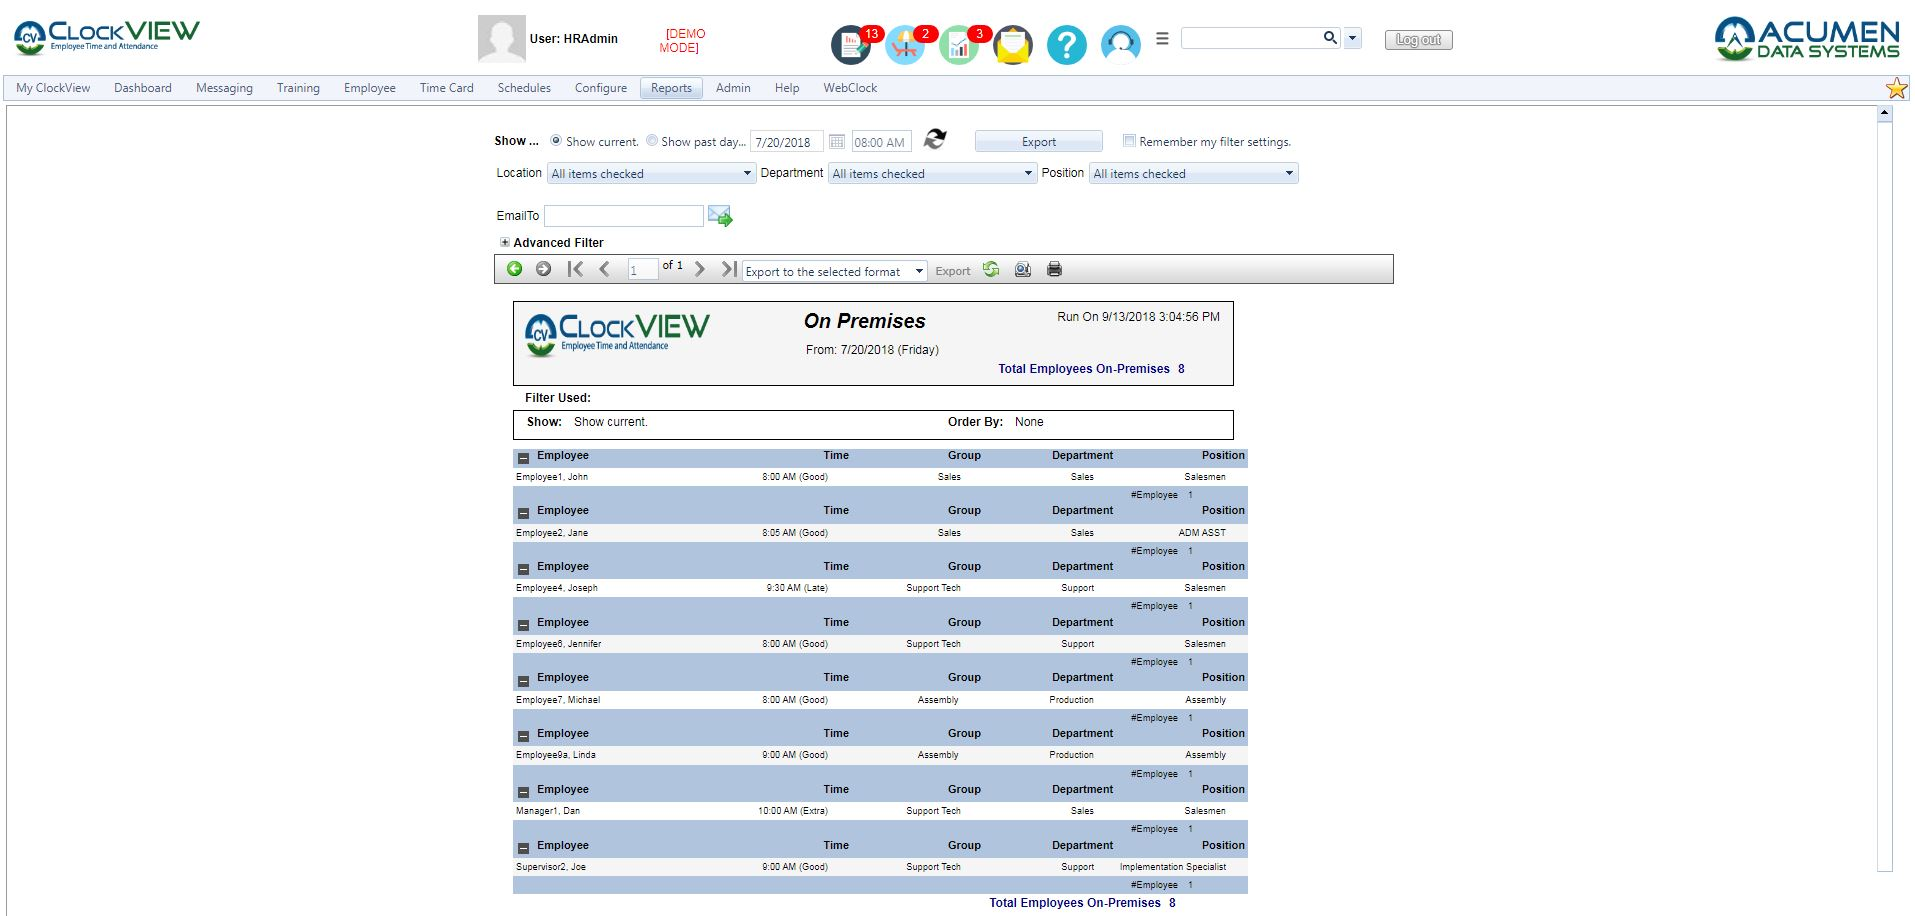 ClockVIEW On Premise Report